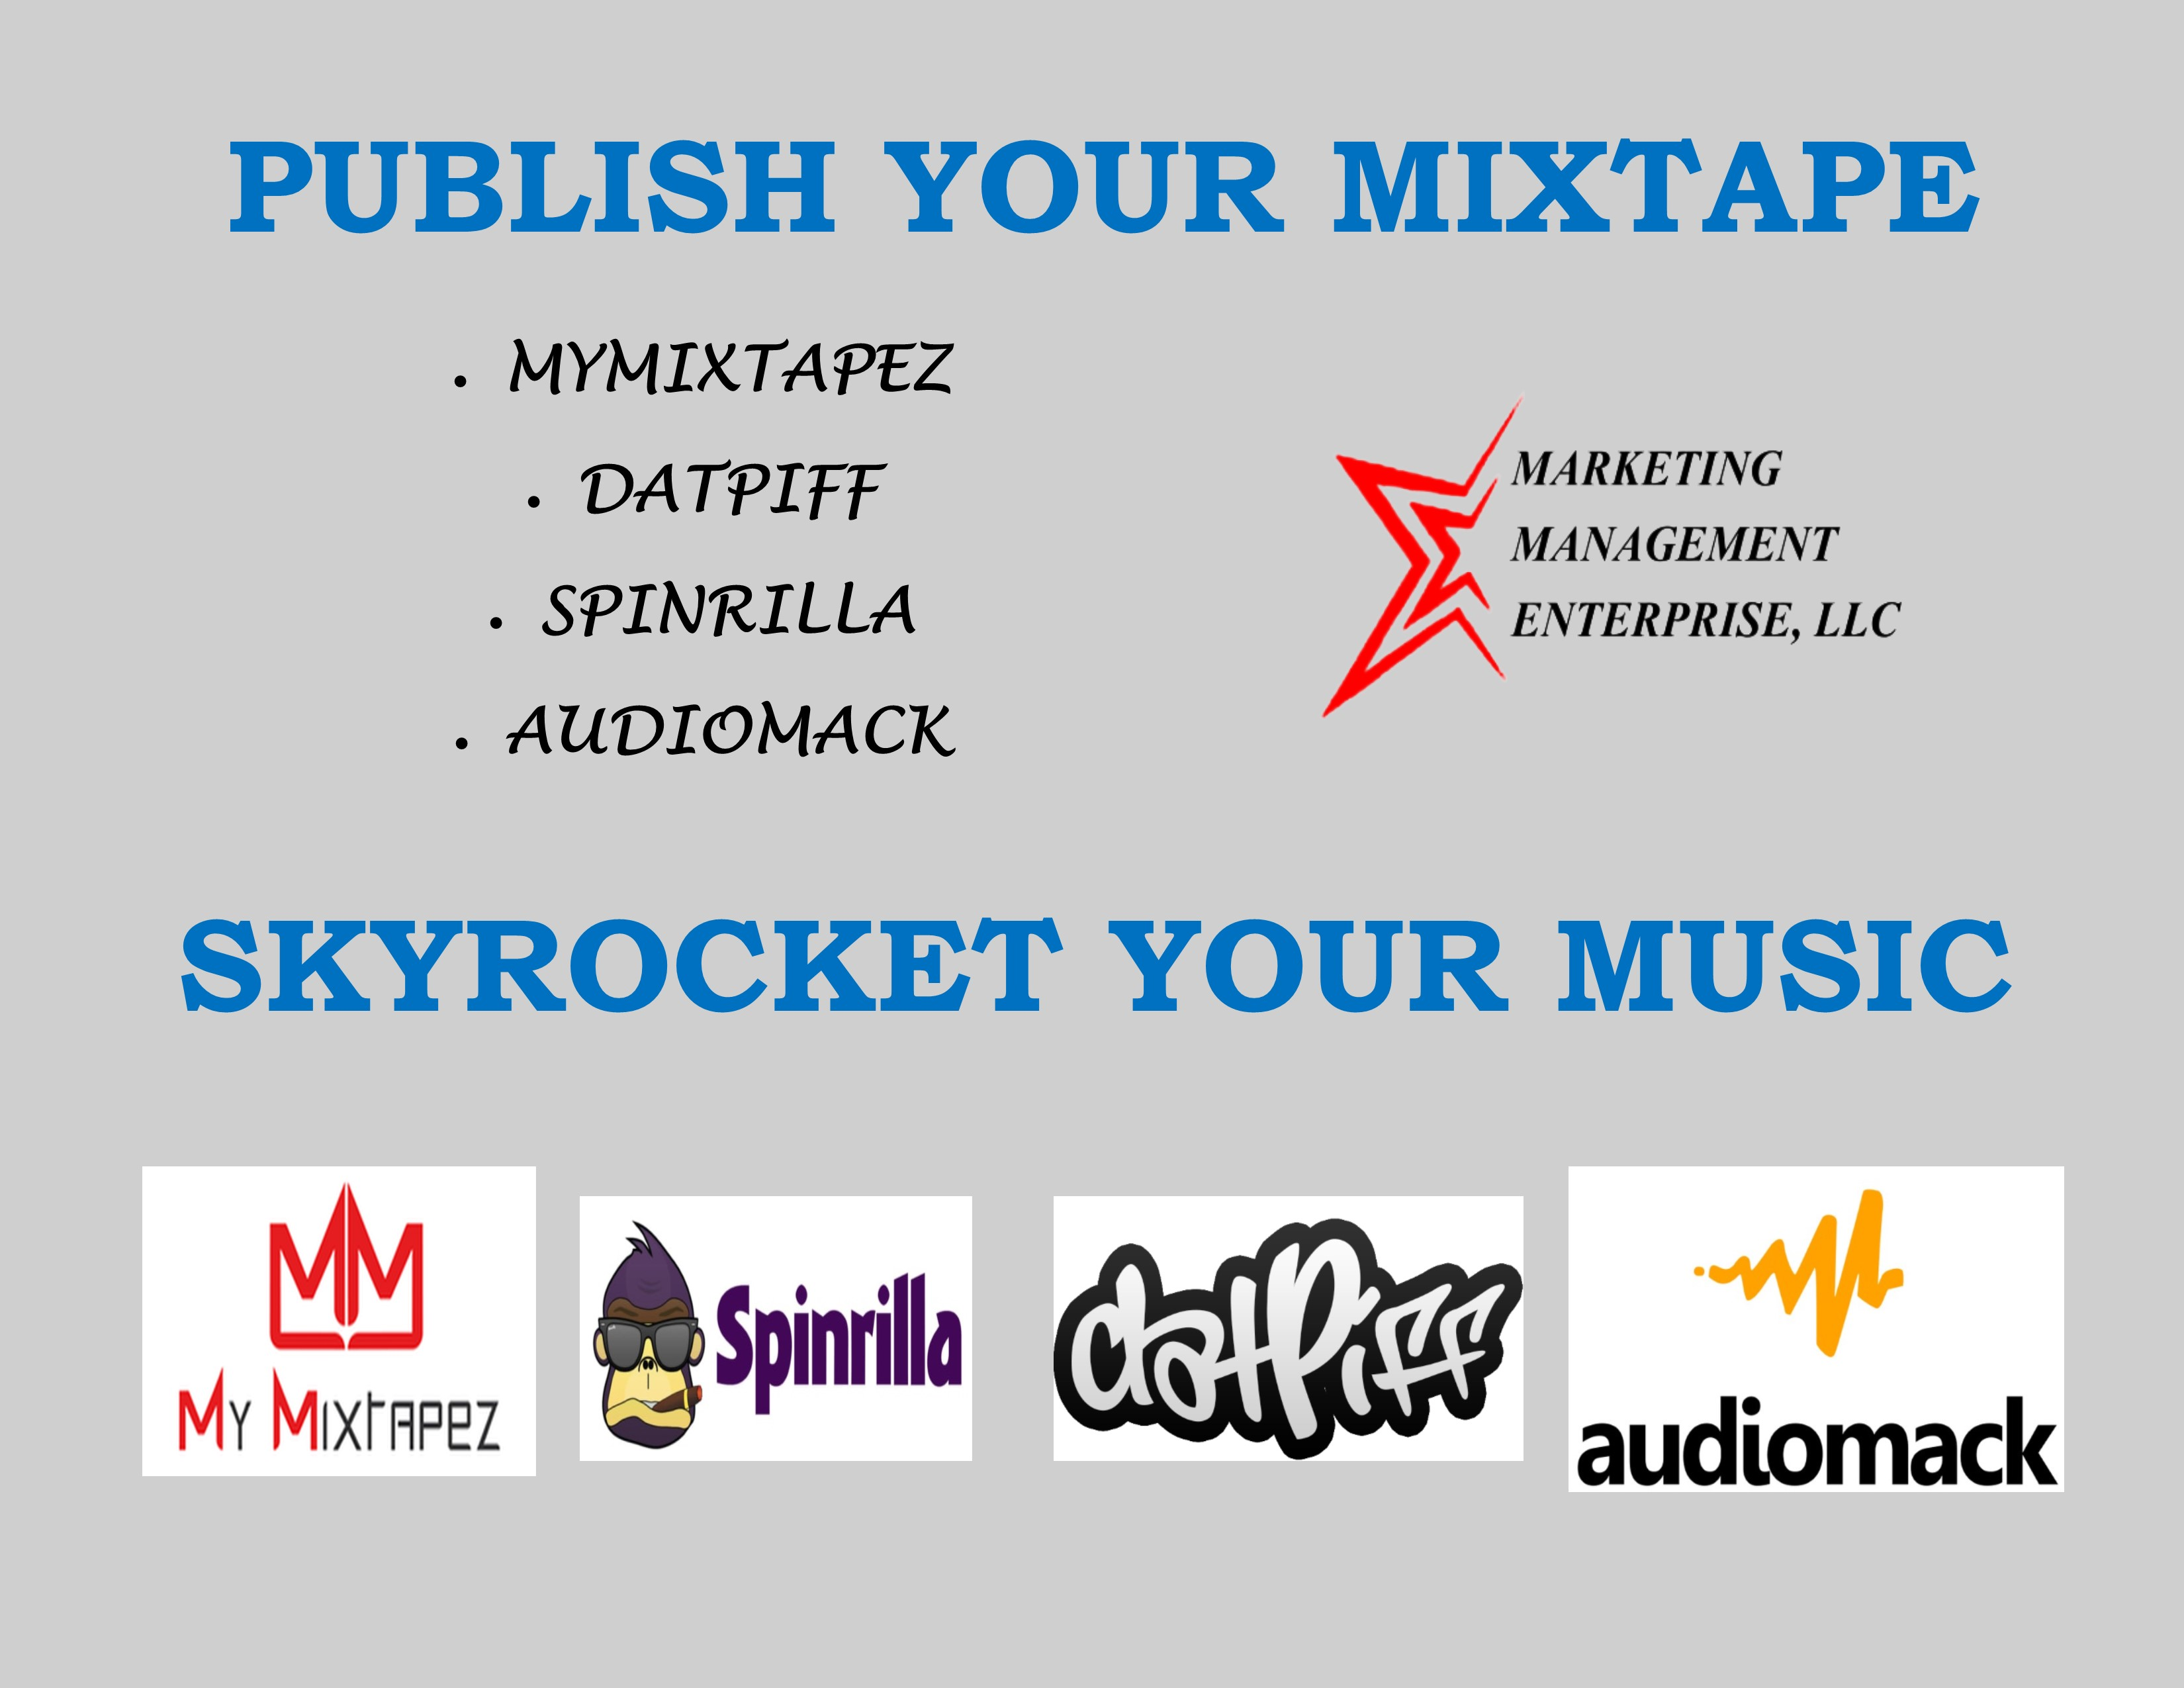 Publish Your Mixtape to TOP MUSIC WEBSITES